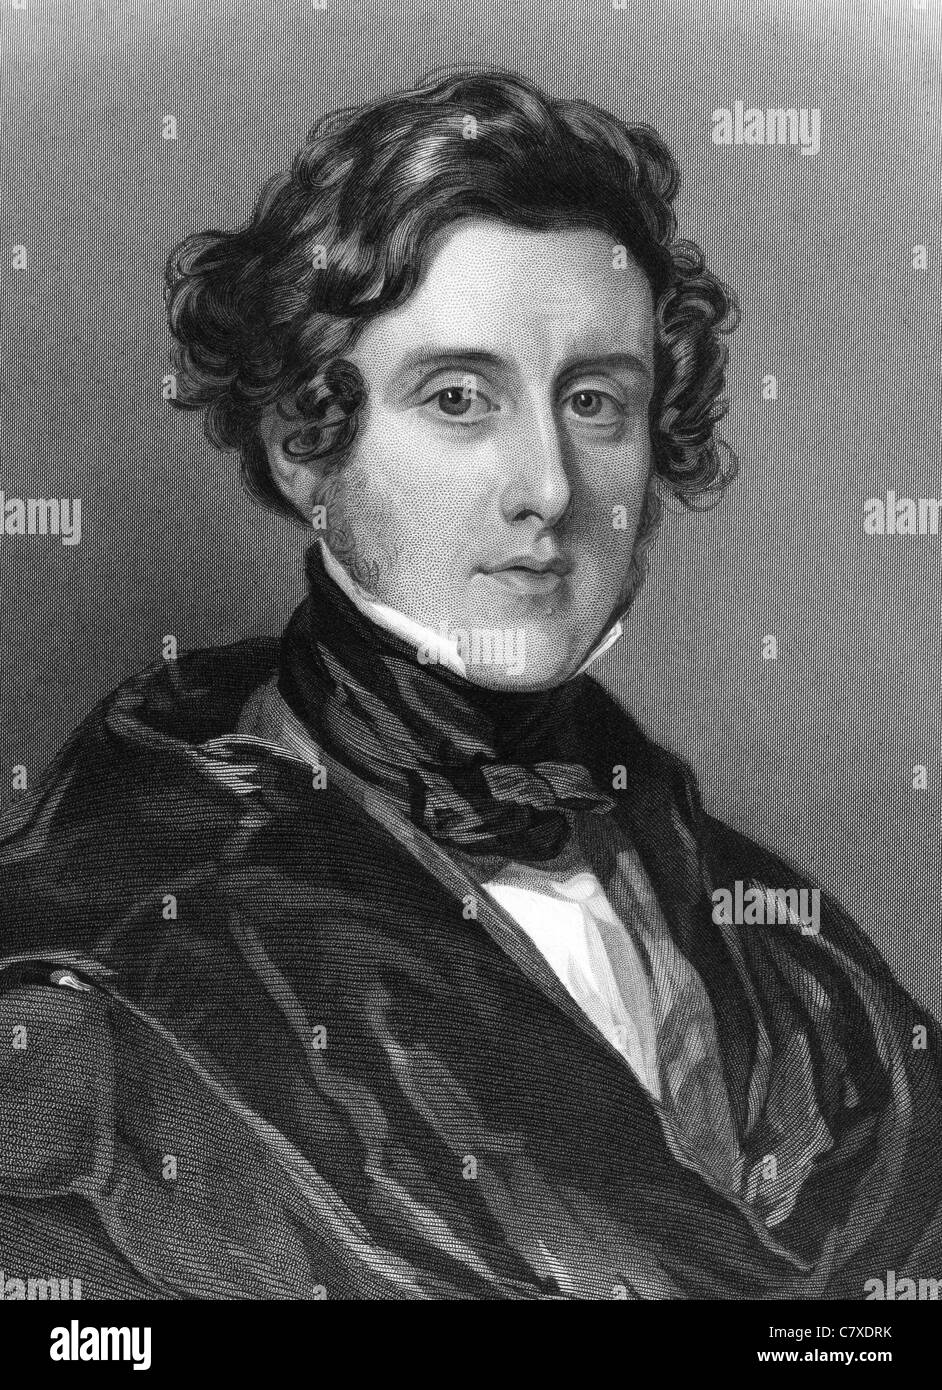 Anthony Ashley-Cooper, 7th Earl of Shaftesbury (1801-1885) on engraving from 1837. English politician and philanthropist. Stock Photo